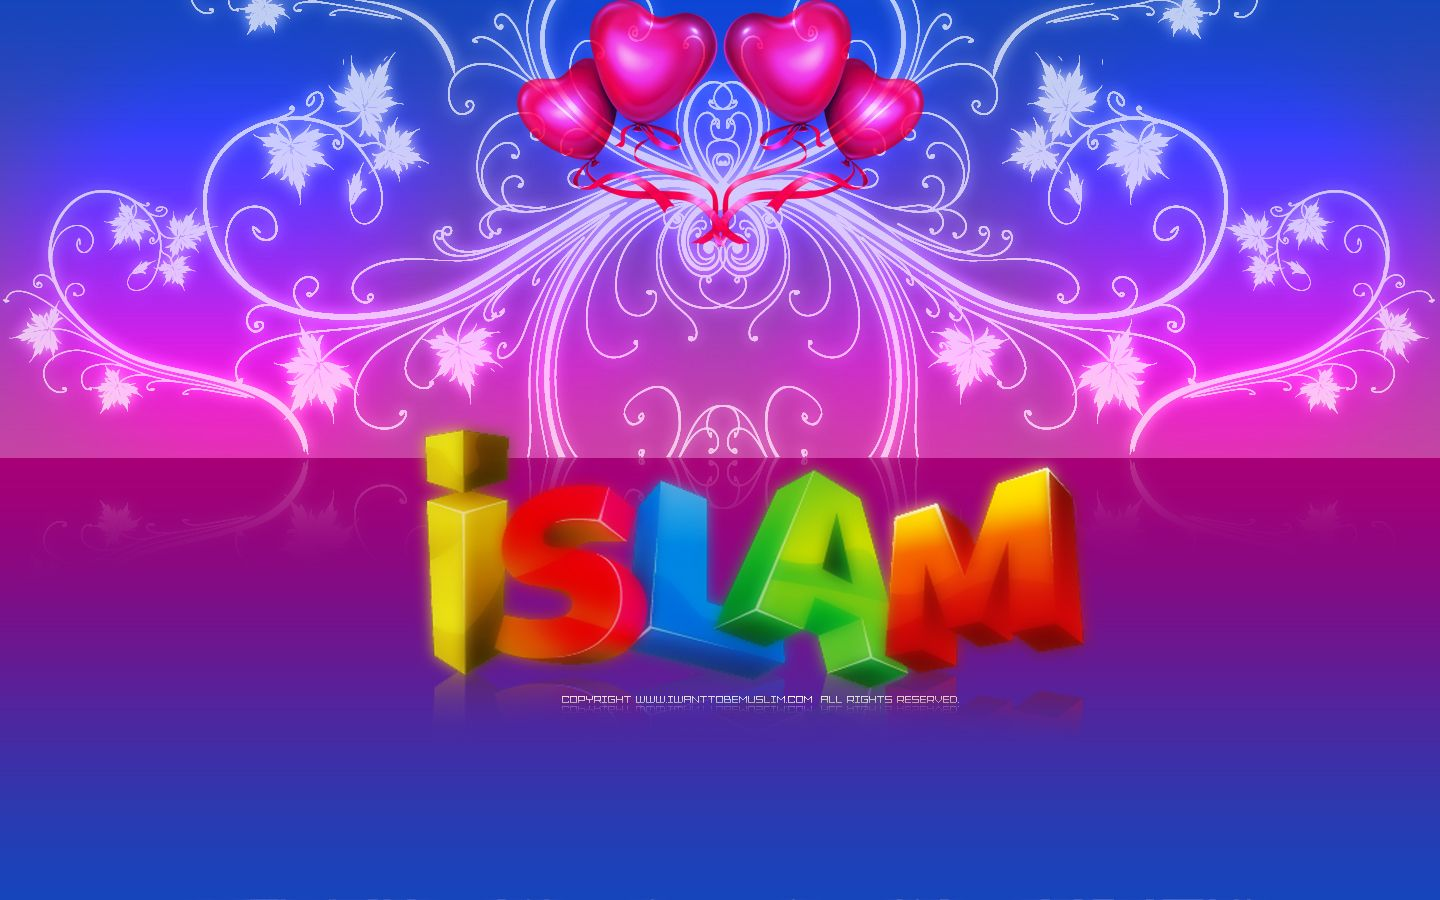 Islamic Names Wallpapers Find Best Latest Islamic Names Wallpapers